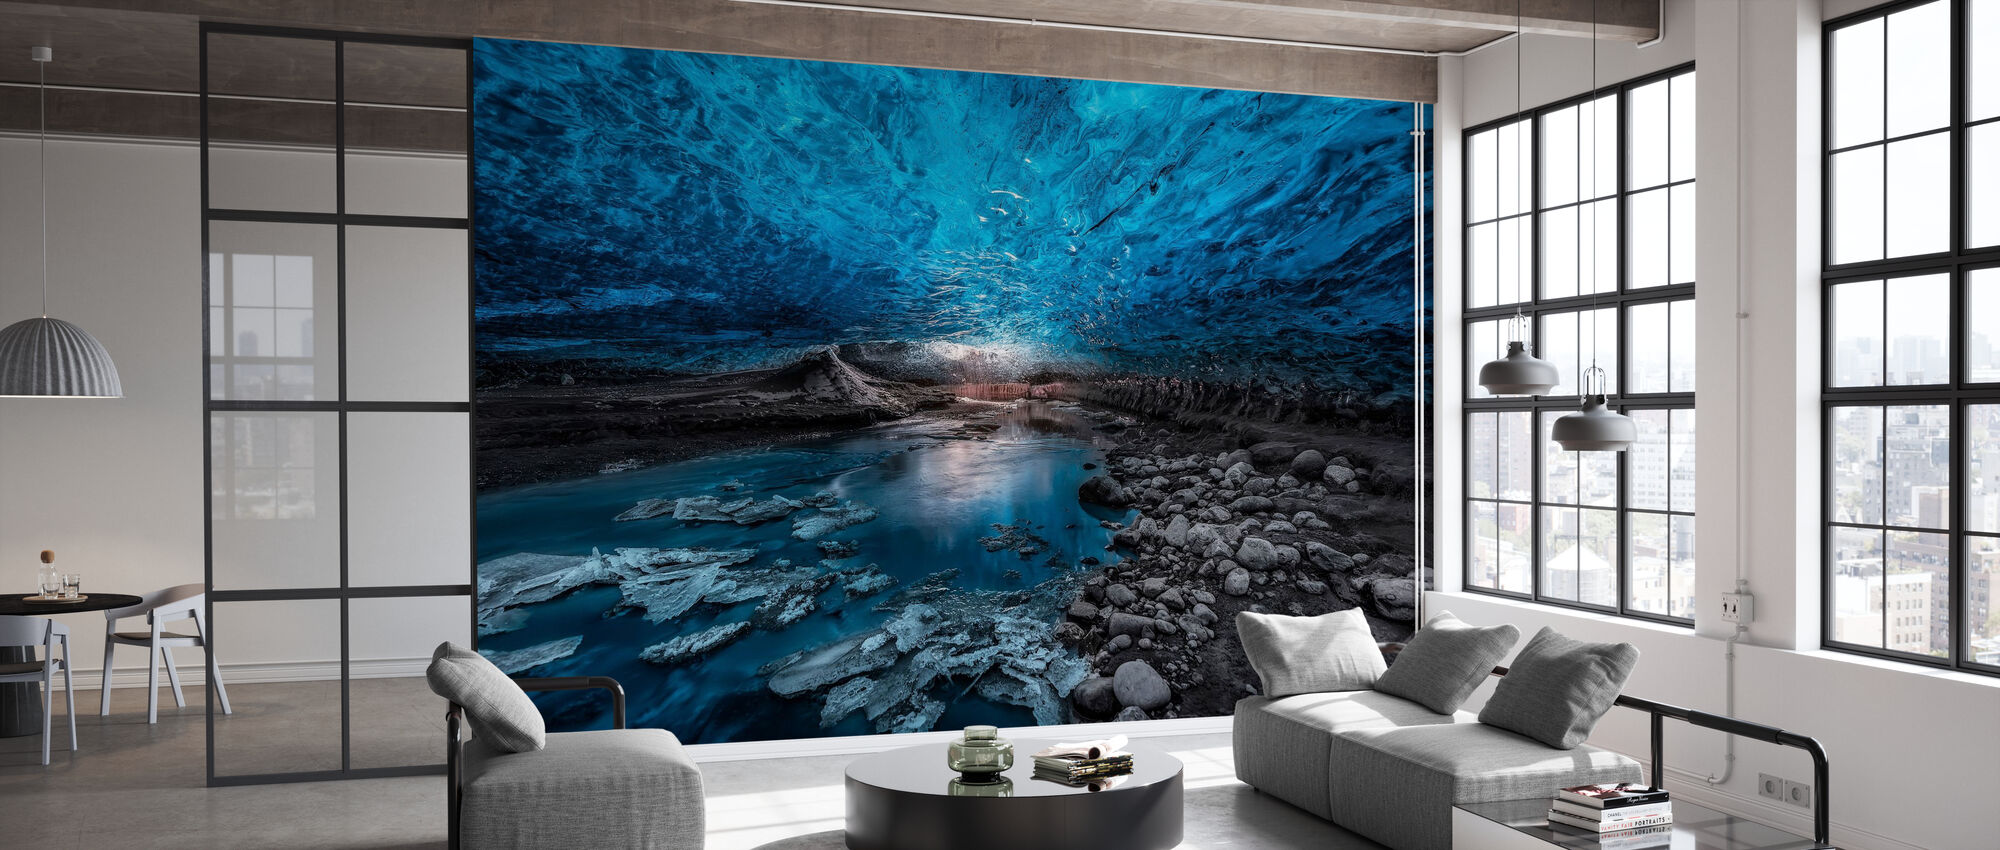 Ice Cave - Wallpaper - Office